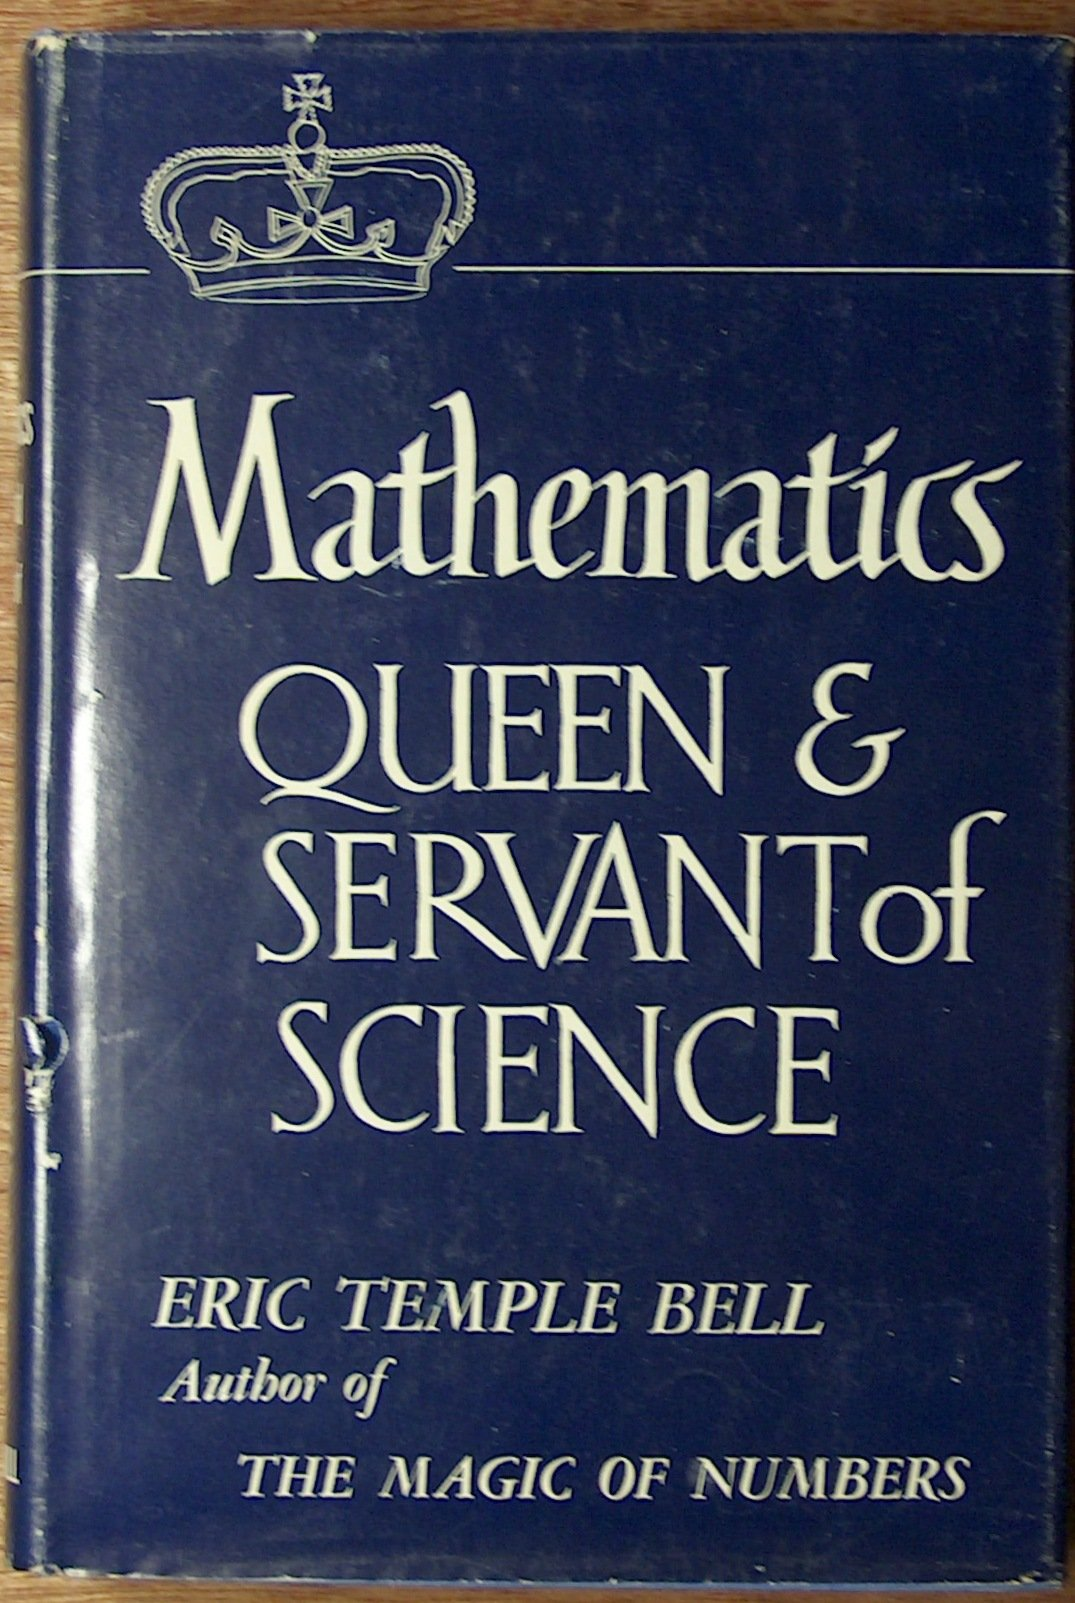 Mathematics, Queen and Servant of Science: Amazon.co.uk: E. T. Bell: Books